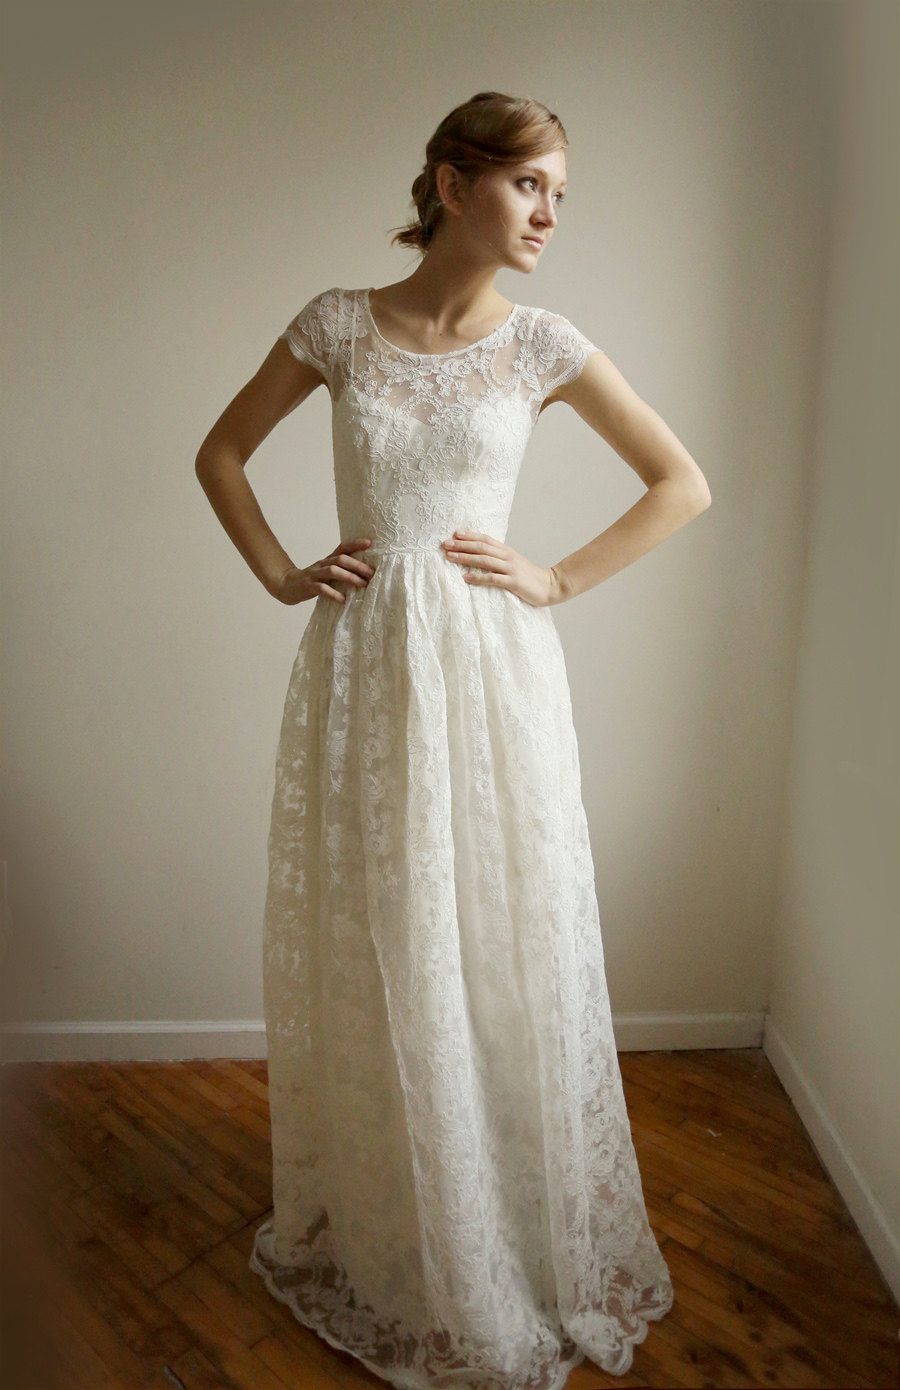 Sk fashion talk cotton wedding dresses glad and surprised for Simple cotton wedding dress